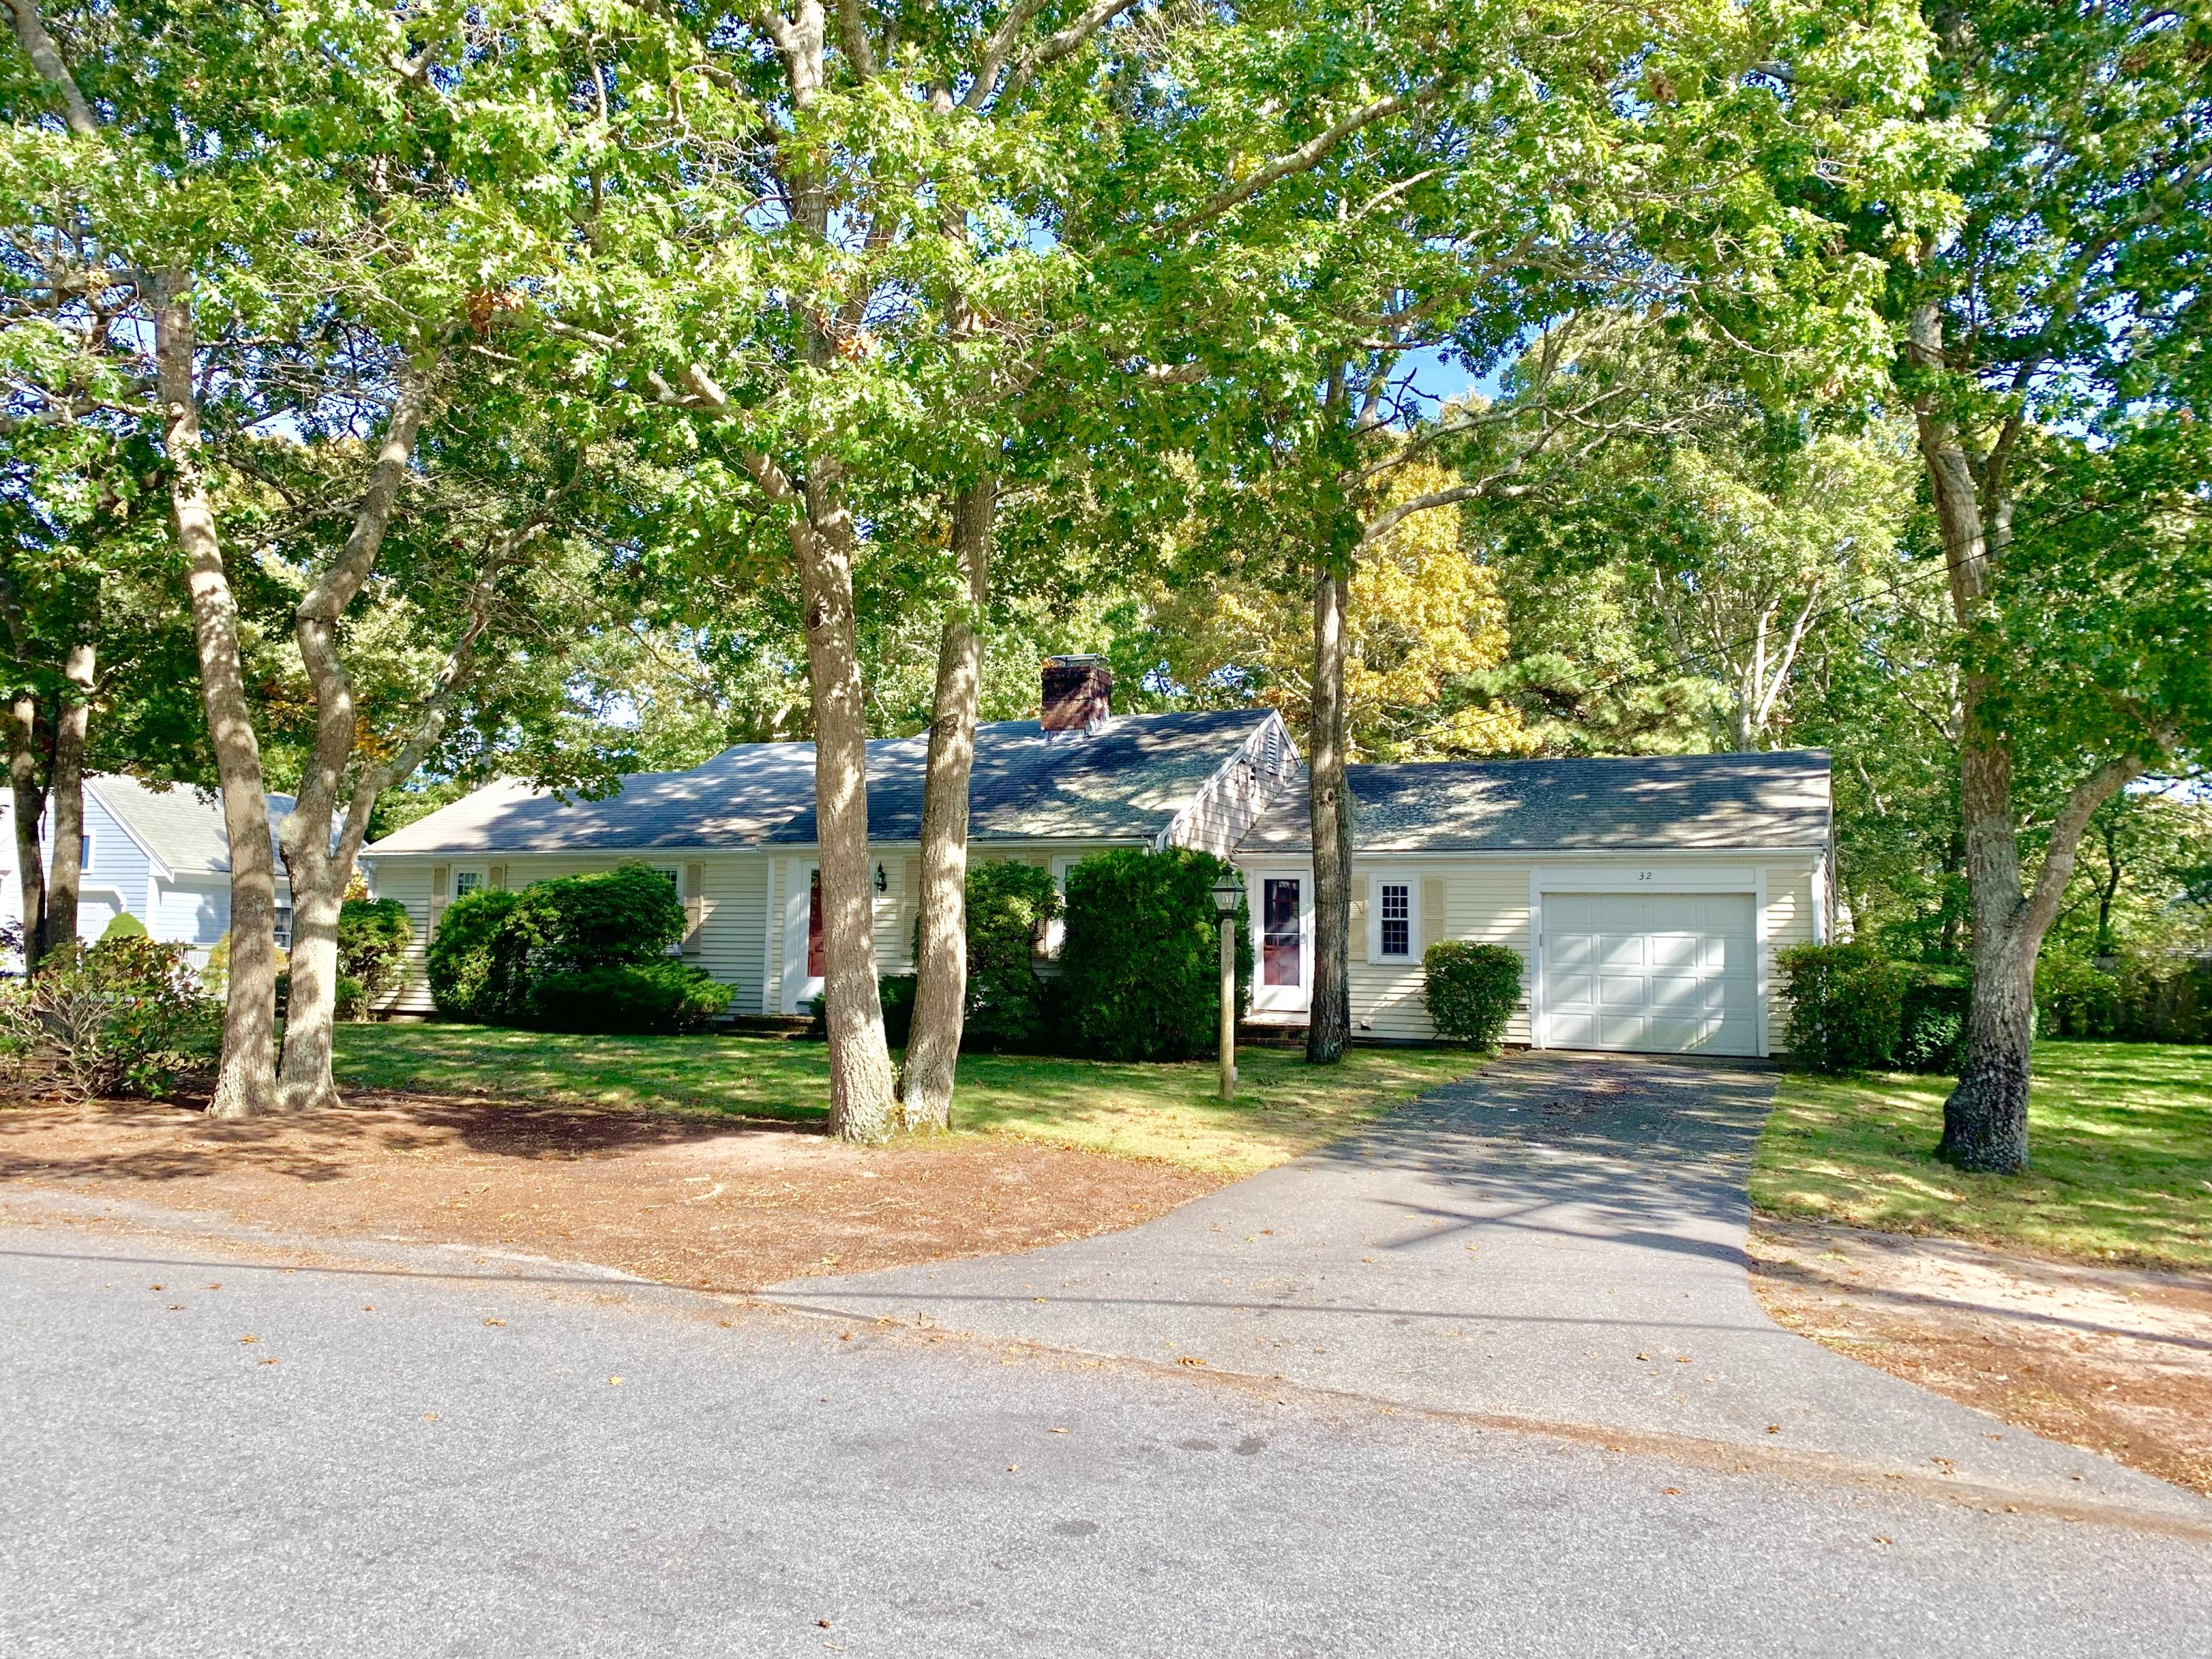 32 Country Club Drive, South Yarmouth MA, 02664 details